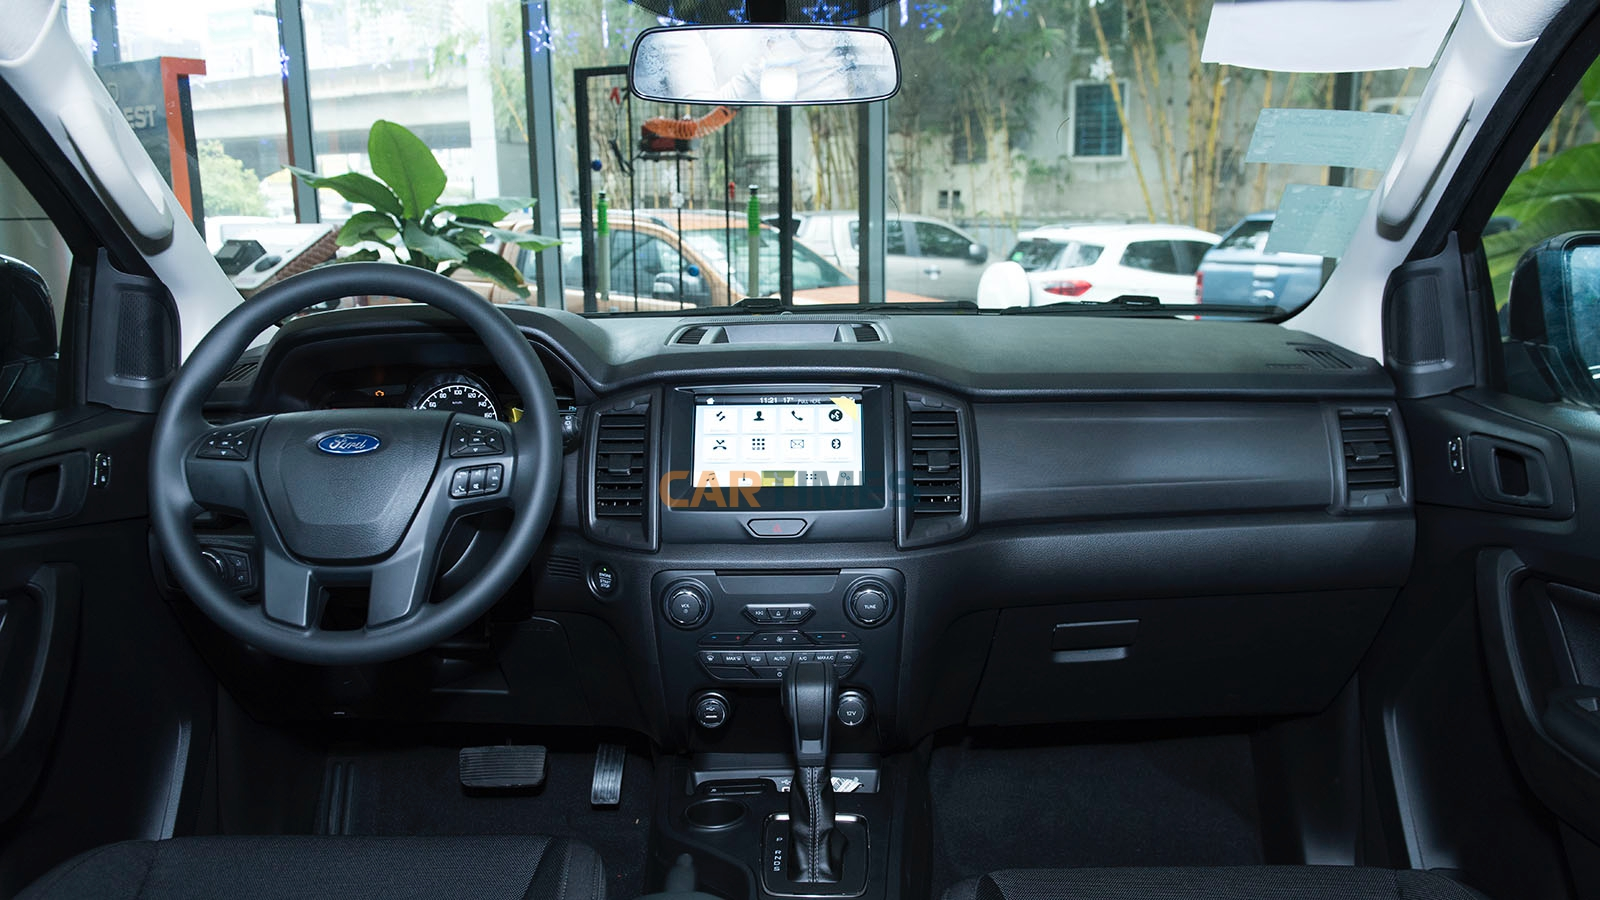 Thiết kế nội thất xe Ford Everest Ambiente